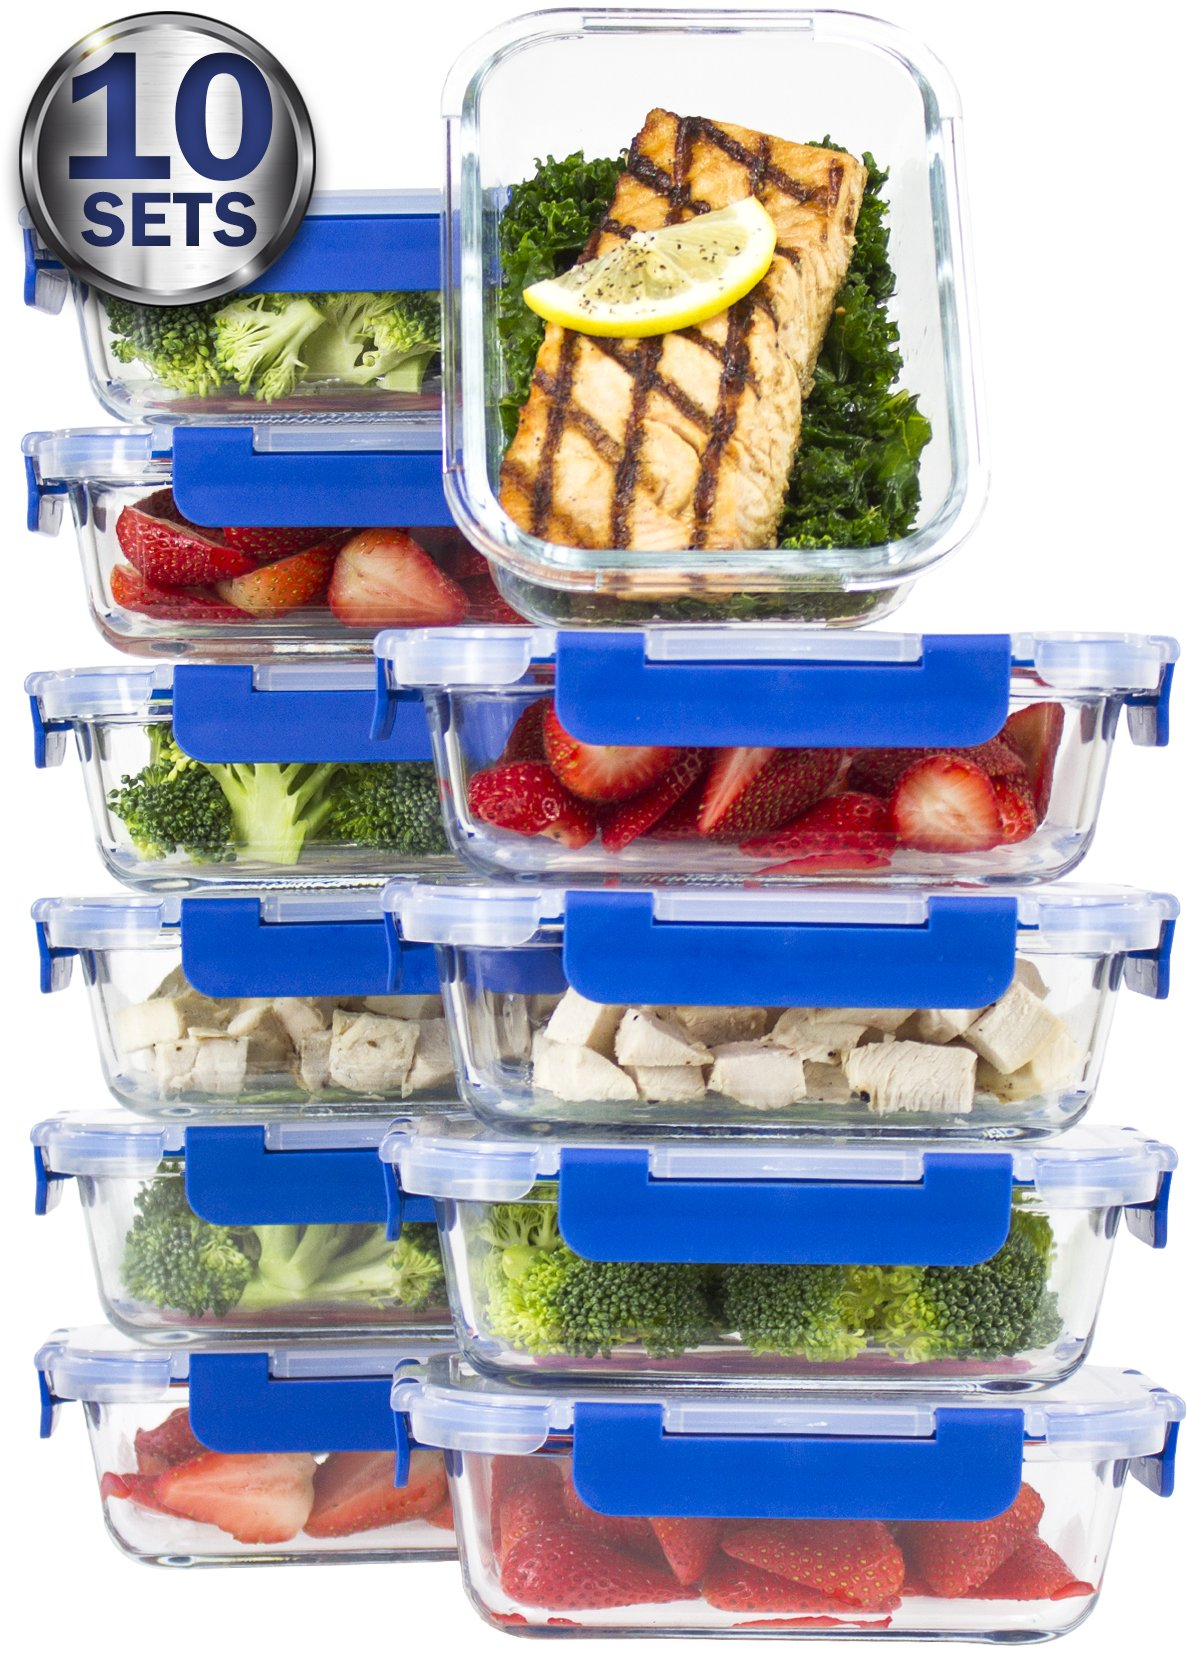 [10 SETS VALUE PACK] Glass Meal Prep Containers – Glass Food Storage Containers with Lids Meal Prep – LIFETIME Lids - Lunch Containers Portion Control Containers -BPA Free Containers(24 ounce/ 3 cups) by Misc Home